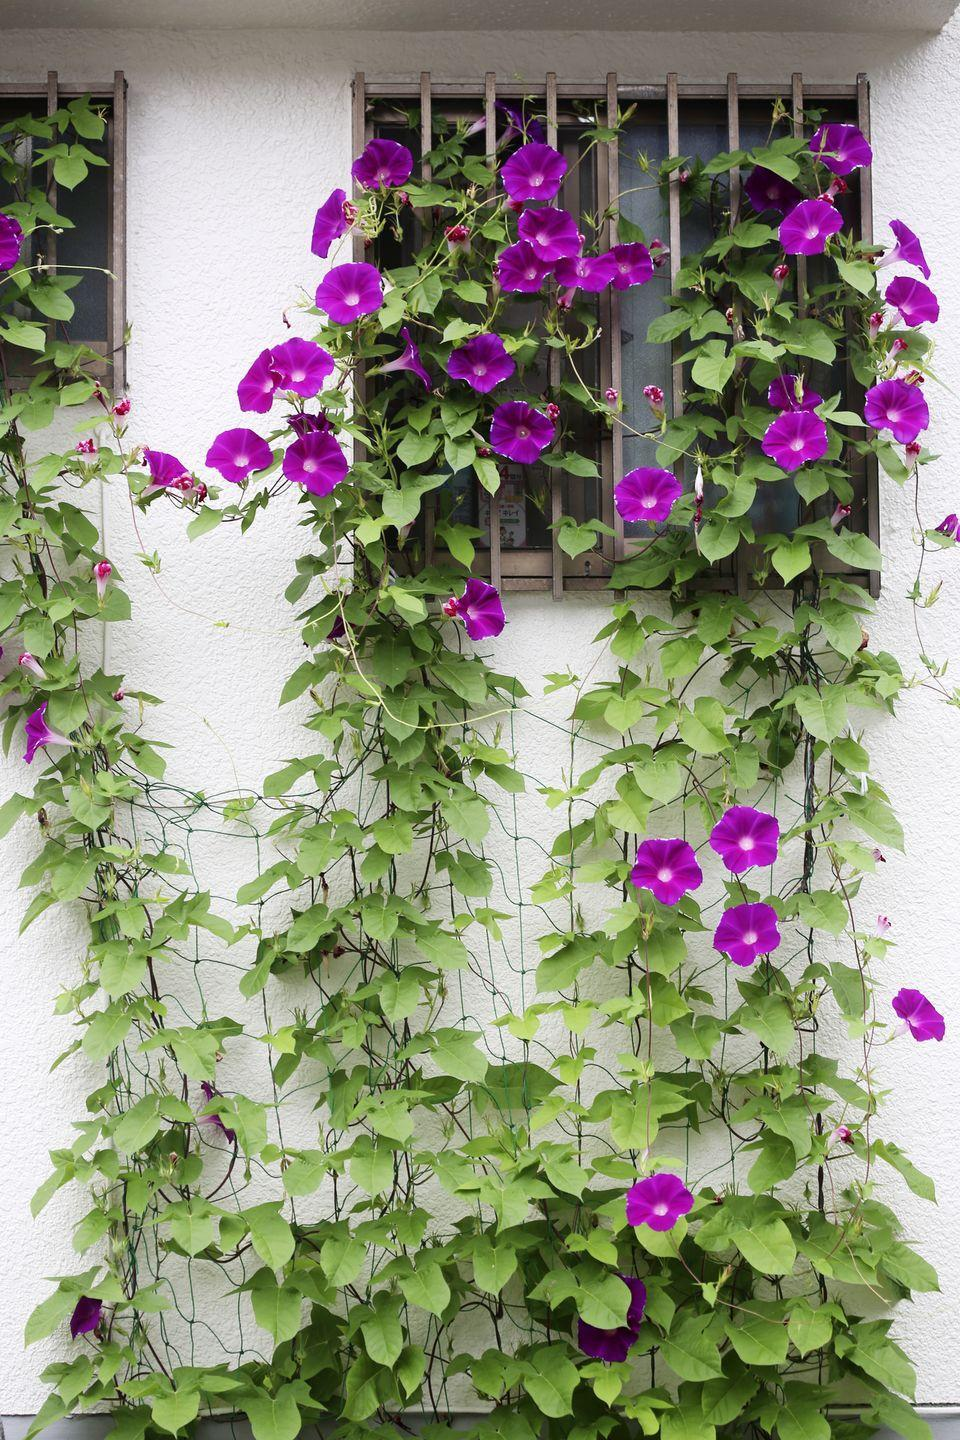 """<p>Morning glories live up to their name, opening in the morning sunshine. They grow quickly from seed. Pick off the dried seeds after they bloom if you don't want them to self-sow next year.</p><p><a class=""""link rapid-noclick-resp"""" href=""""https://go.redirectingat.com?id=74968X1596630&url=https%3A%2F%2Fwww.burpee.com%2Fflowers%2Fmorning-glories%2Fmorning-glory-heavenly-blue-prod000284.html&sref=https%3A%2F%2Fwww.countryliving.com%2Fgardening%2Fgarden-ideas%2Fadvice%2Fg1456%2Ffast-growing-vines%2F"""" rel=""""nofollow noopener"""" target=""""_blank"""" data-ylk=""""slk:SHOP MORNING GLORY SEEDS"""">SHOP MORNING GLORY SEEDS</a></p>"""